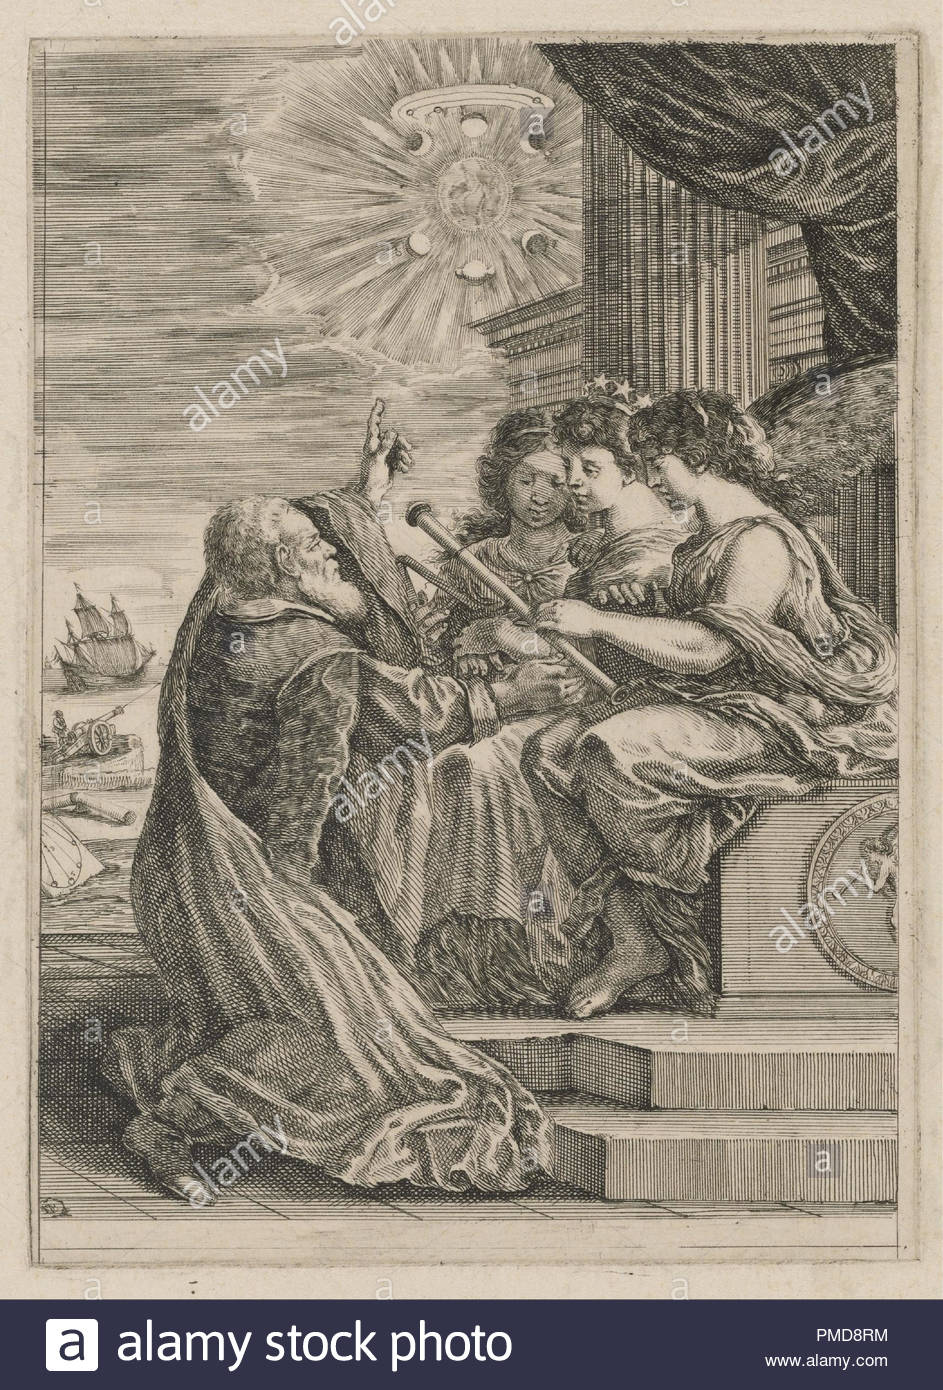 Frontispiece for Opere de Galileo Galilei. Date/Period: 1656. Etching. Width: 17.8 cm. Height: 24.9 cm (sheet). Author: STEFANO DELLA BELLA. - Stock Image